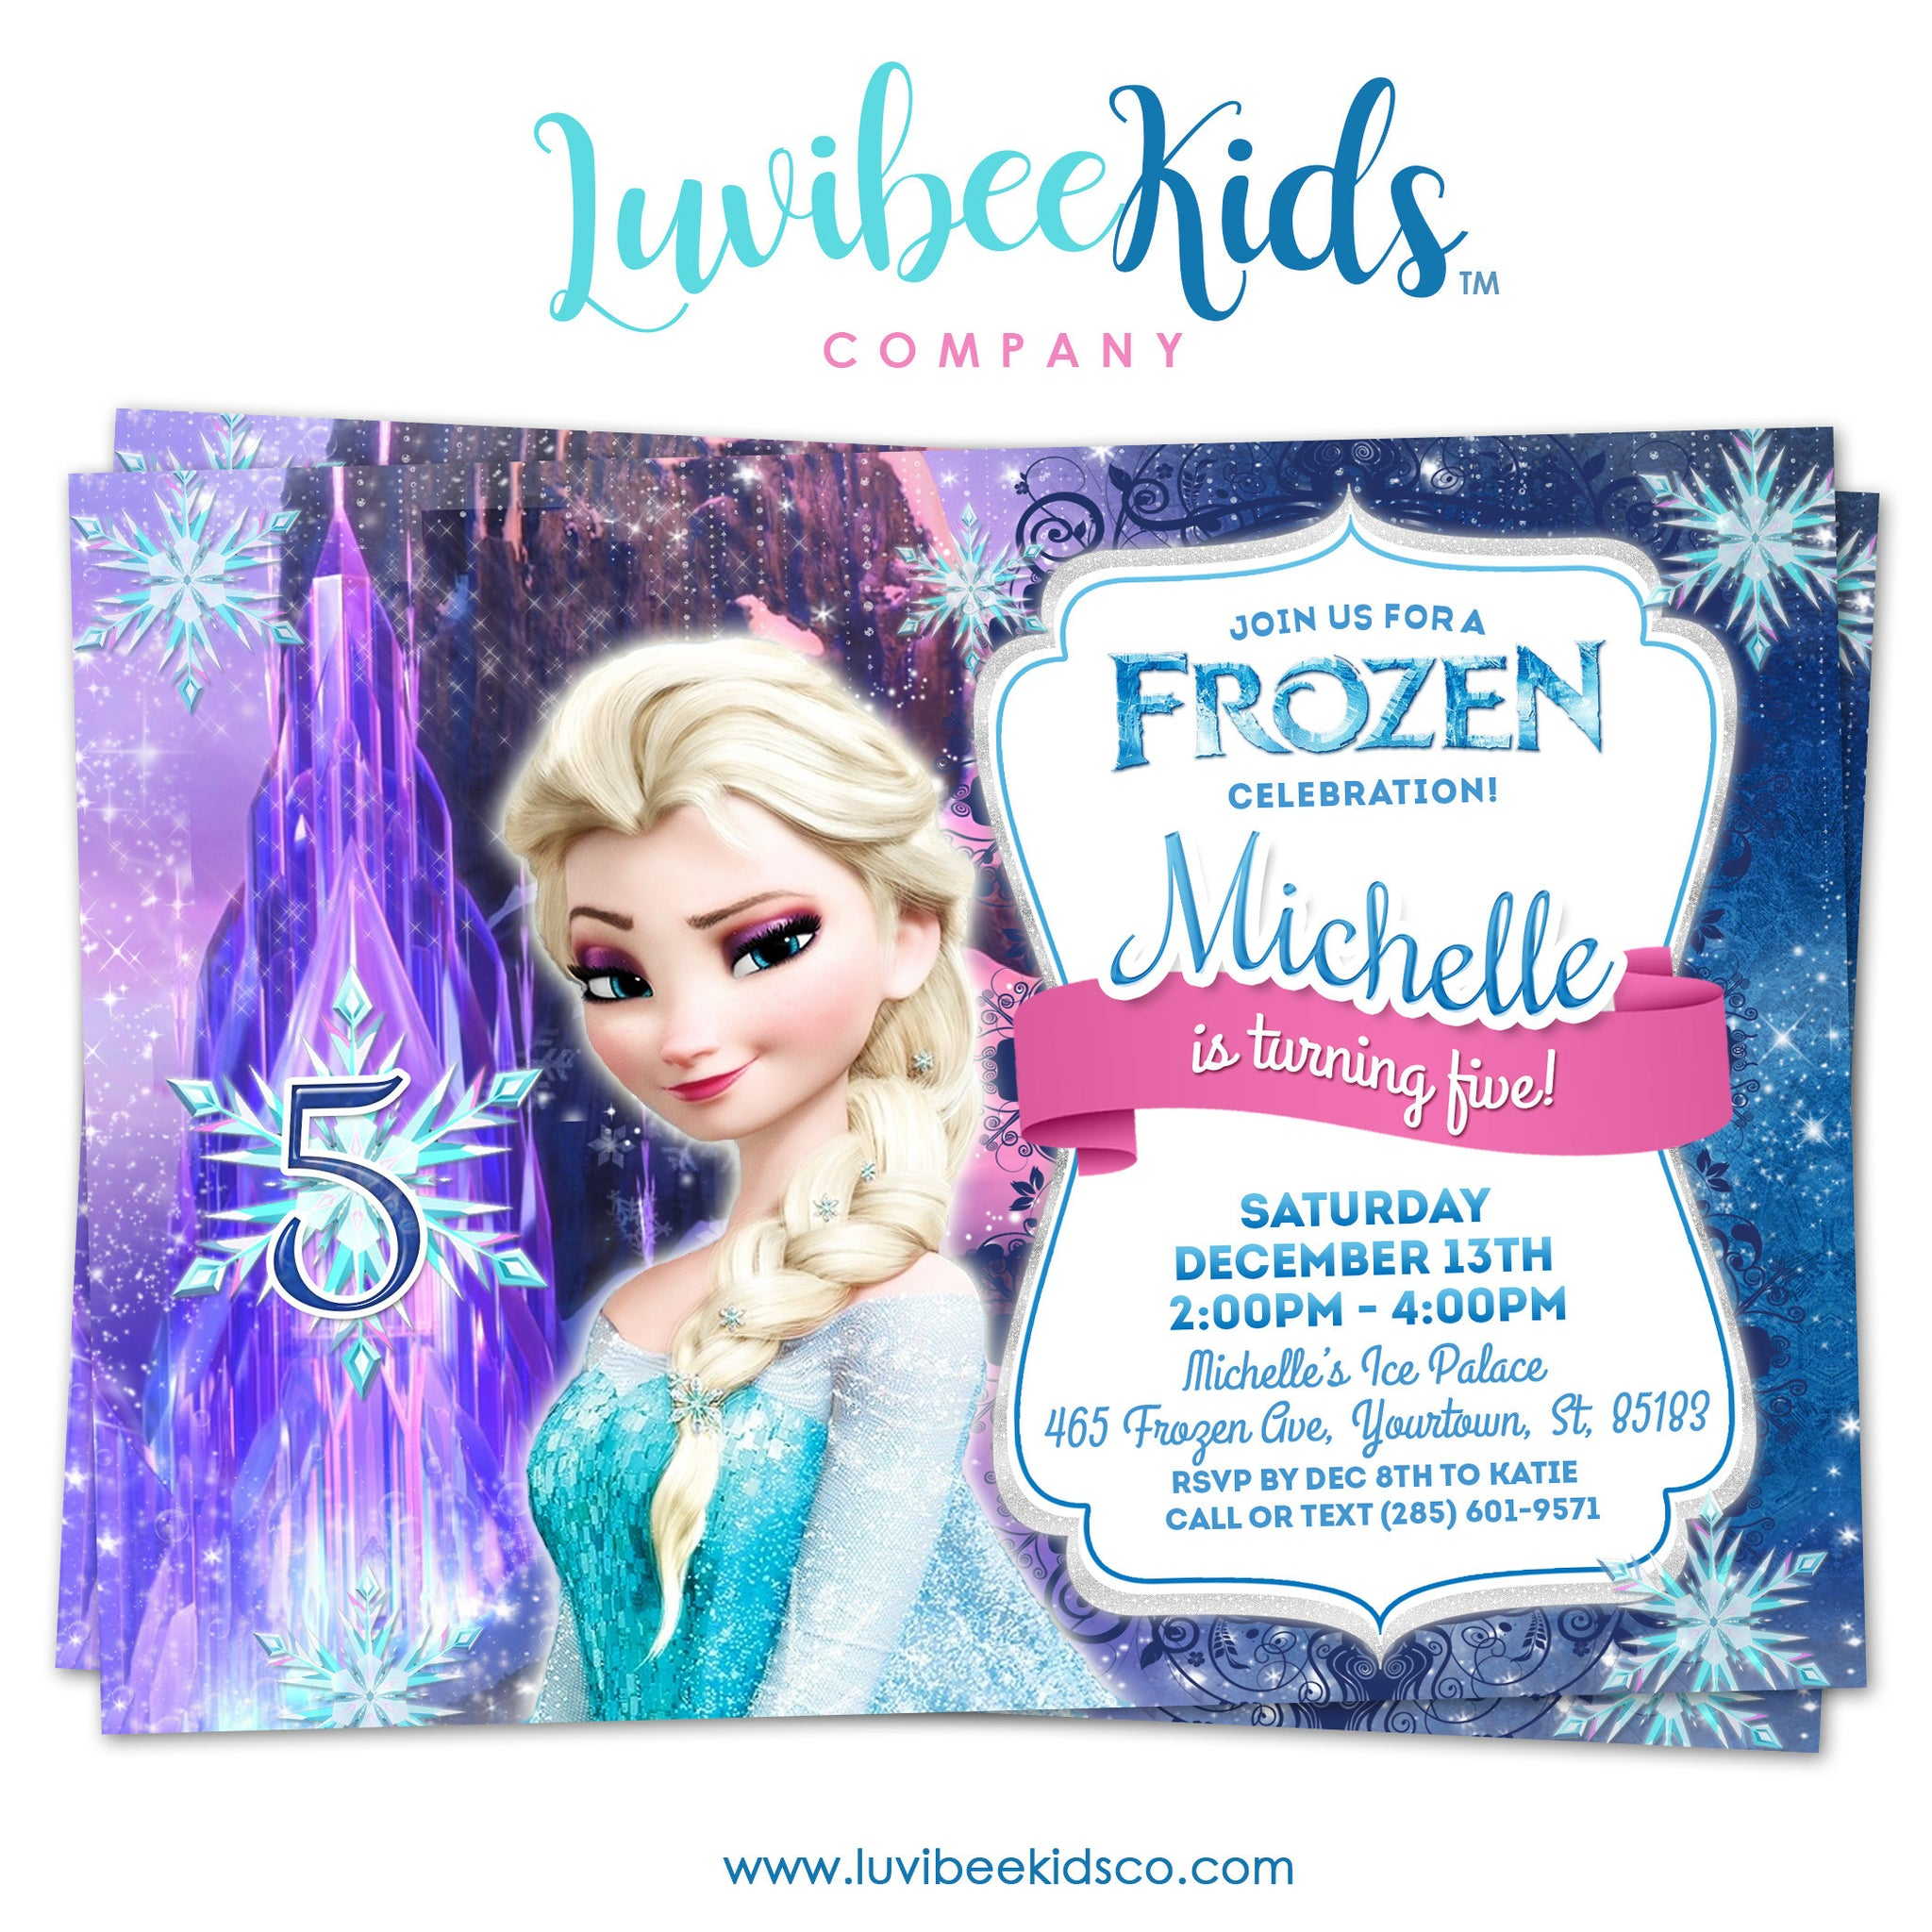 photograph relating to Printable Frozen Birthday Invitations called Frozen Birthday Invitation Frozen Elsa Birthday Occasion Printables